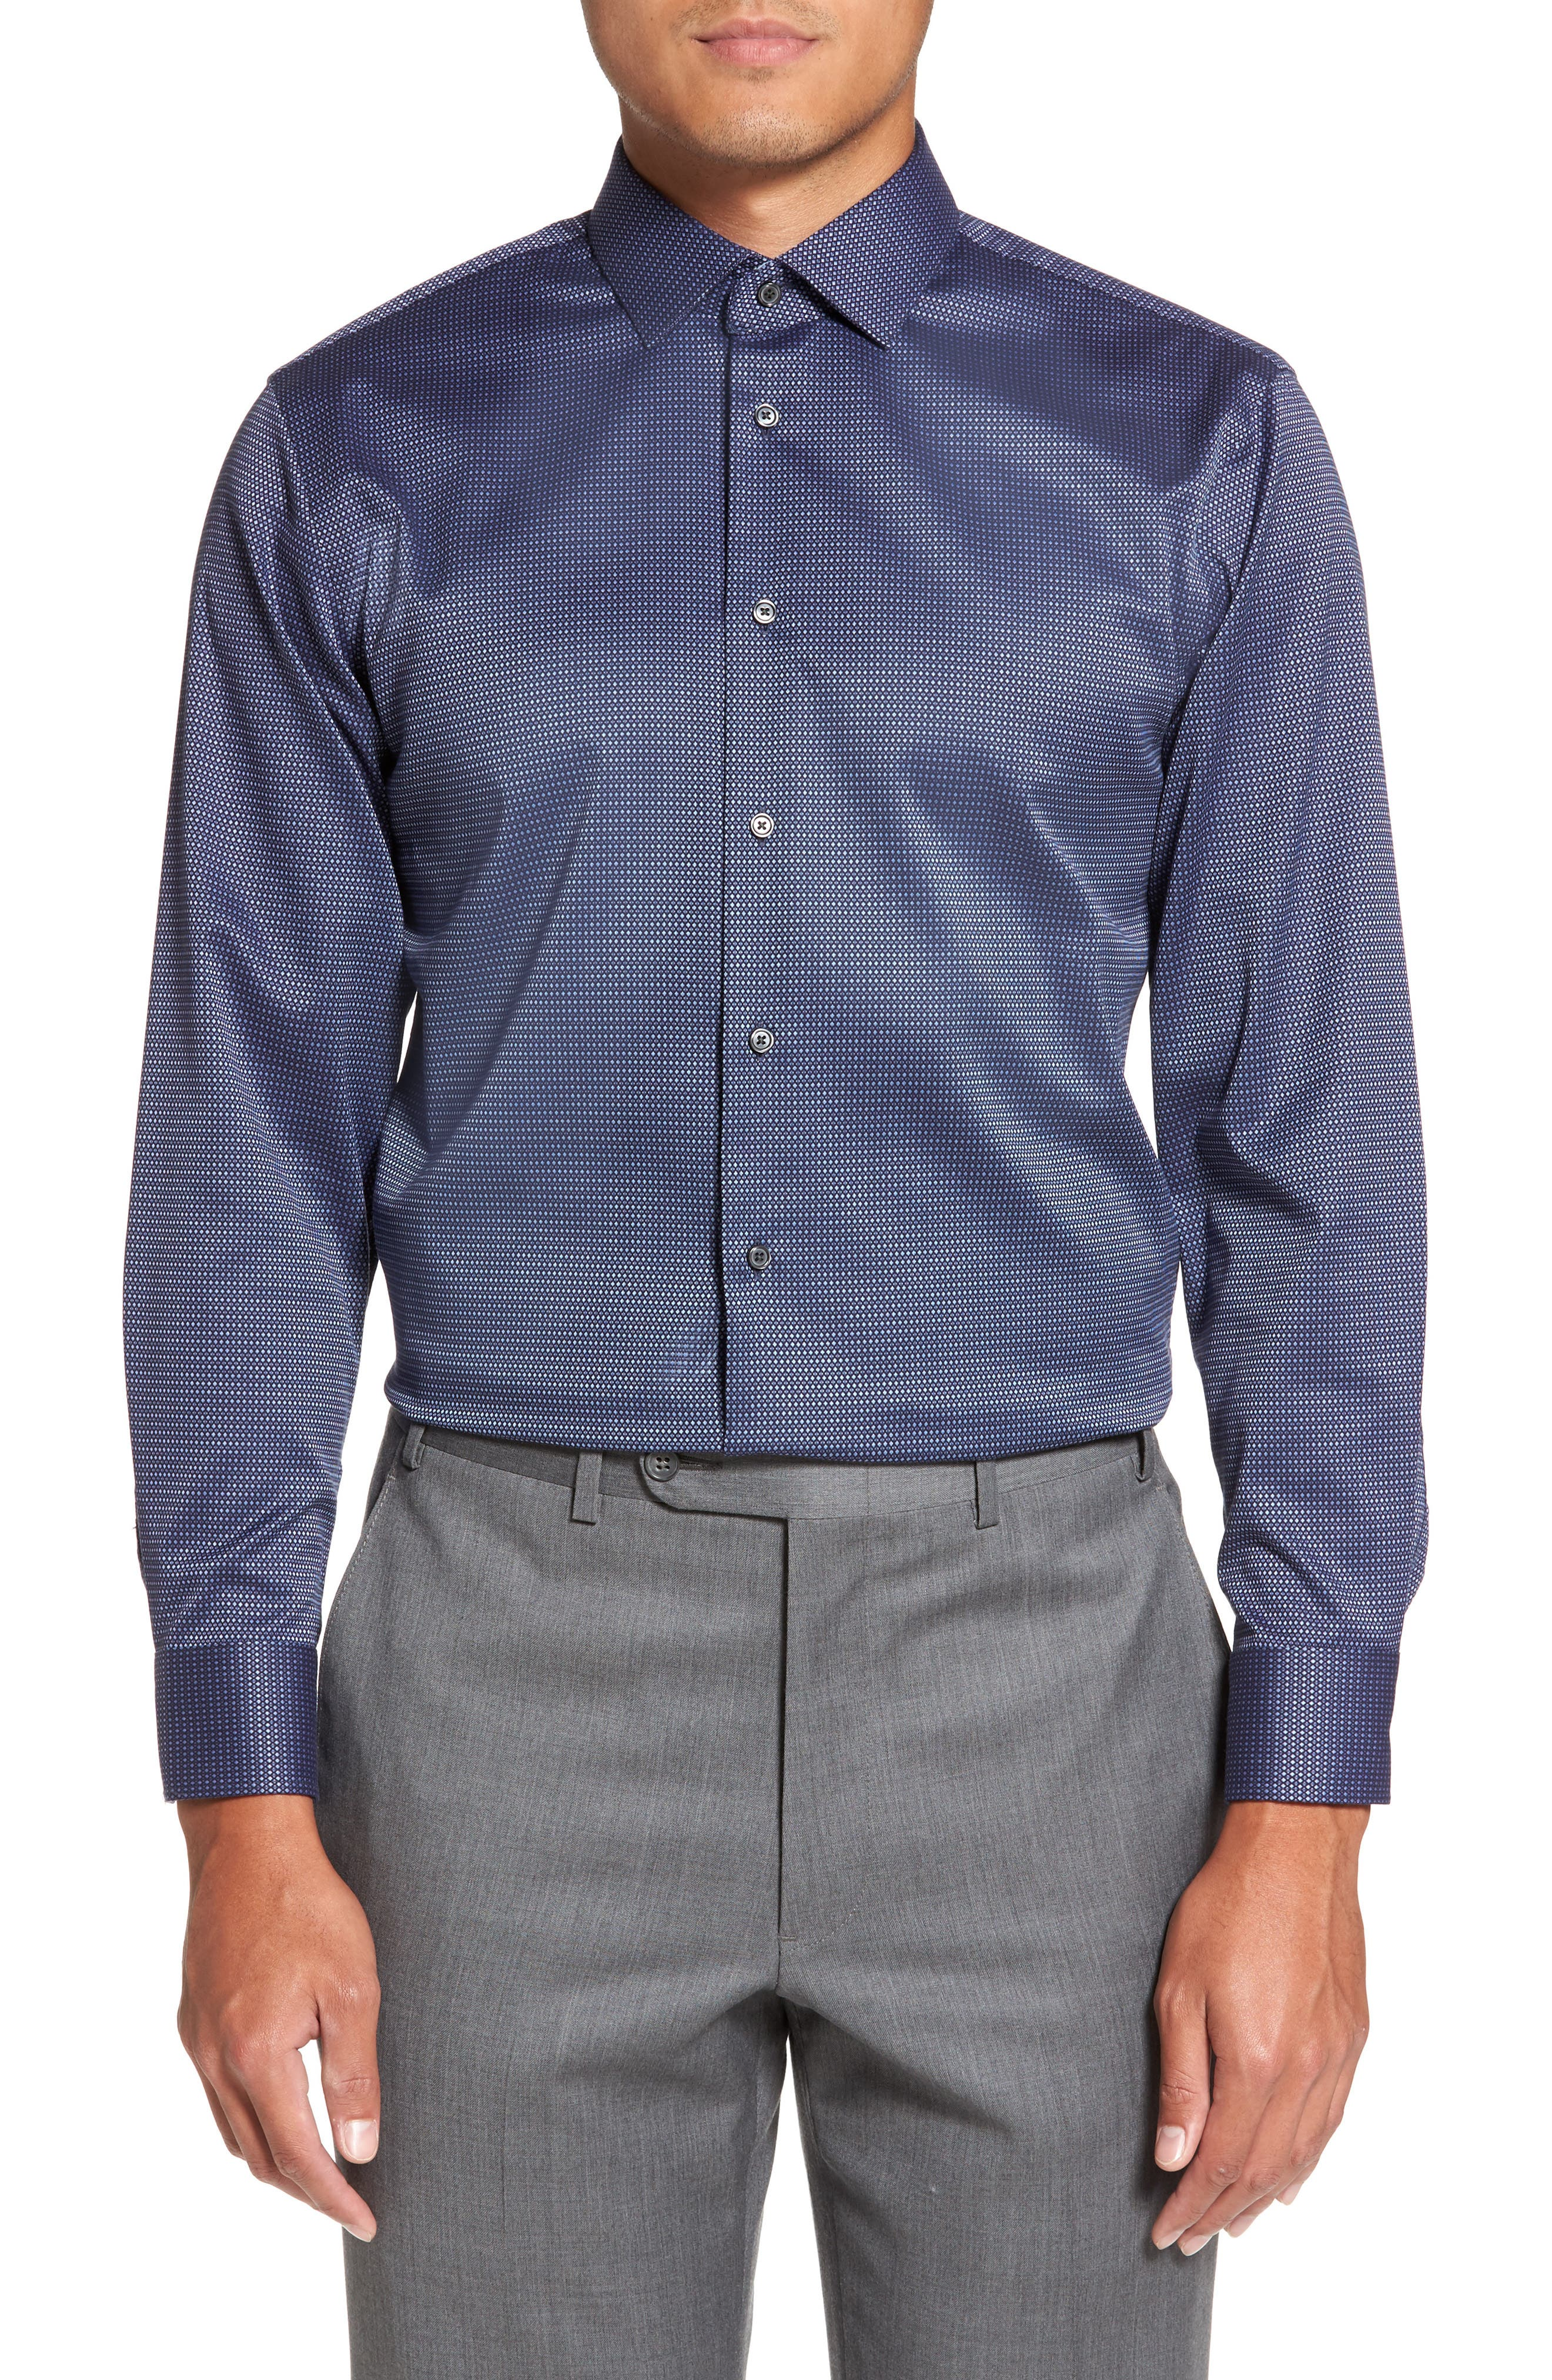 Alternate Image 2  - Calibrate Trim Fit Non-Iron Stretch Dot Dress Shirt